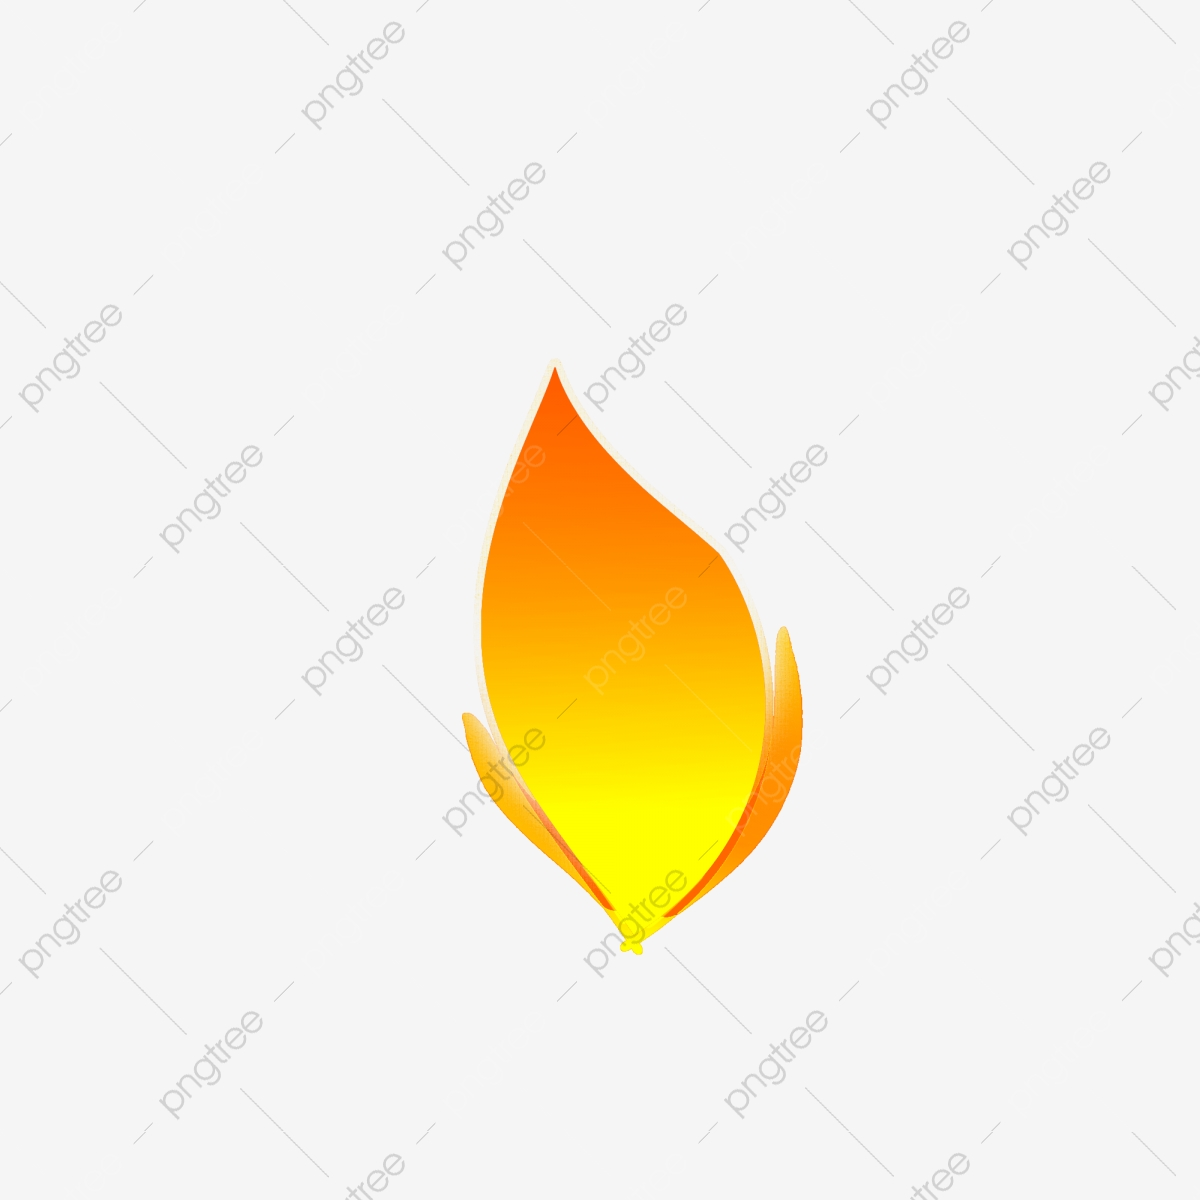 Material png . Clipart flames candle flame